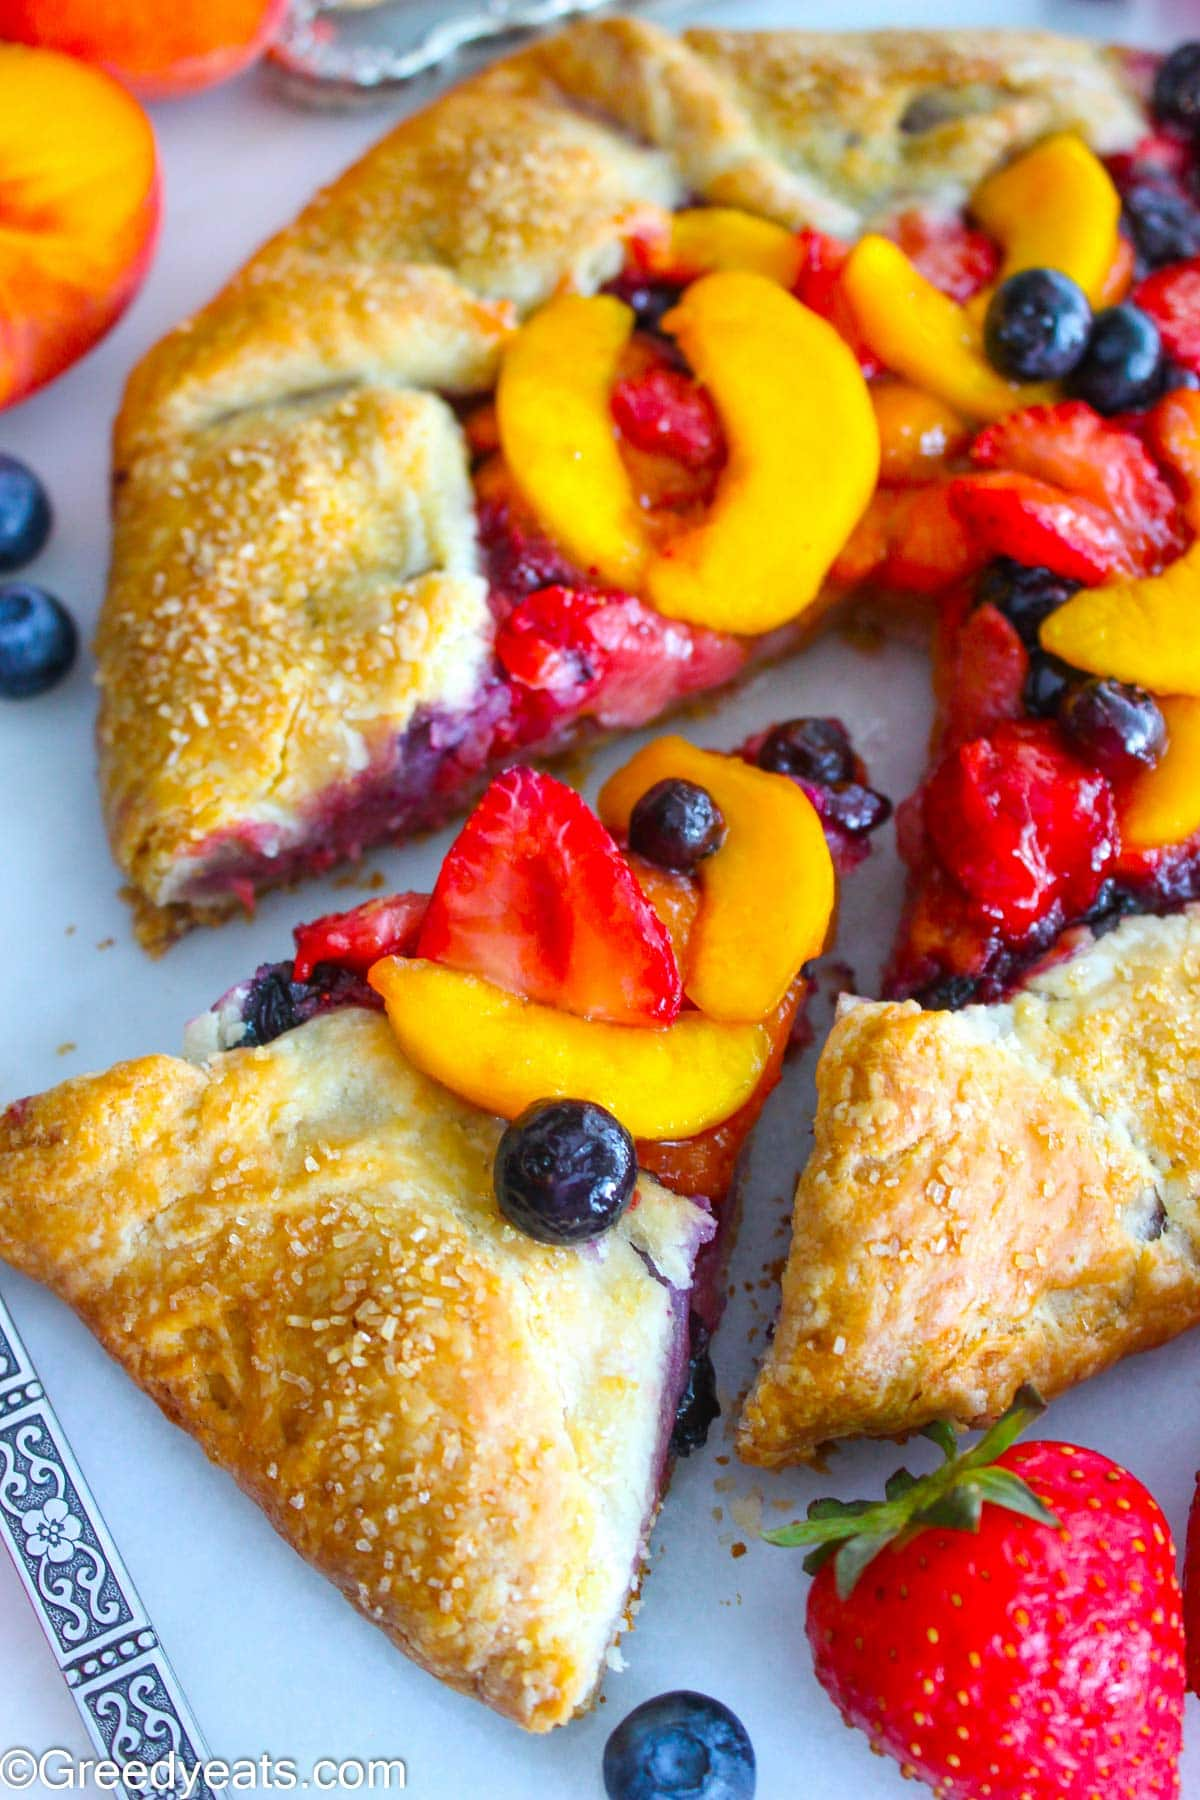 Buttery and flaky Peach Galette topped with coarse sugar and filled with berries filling.